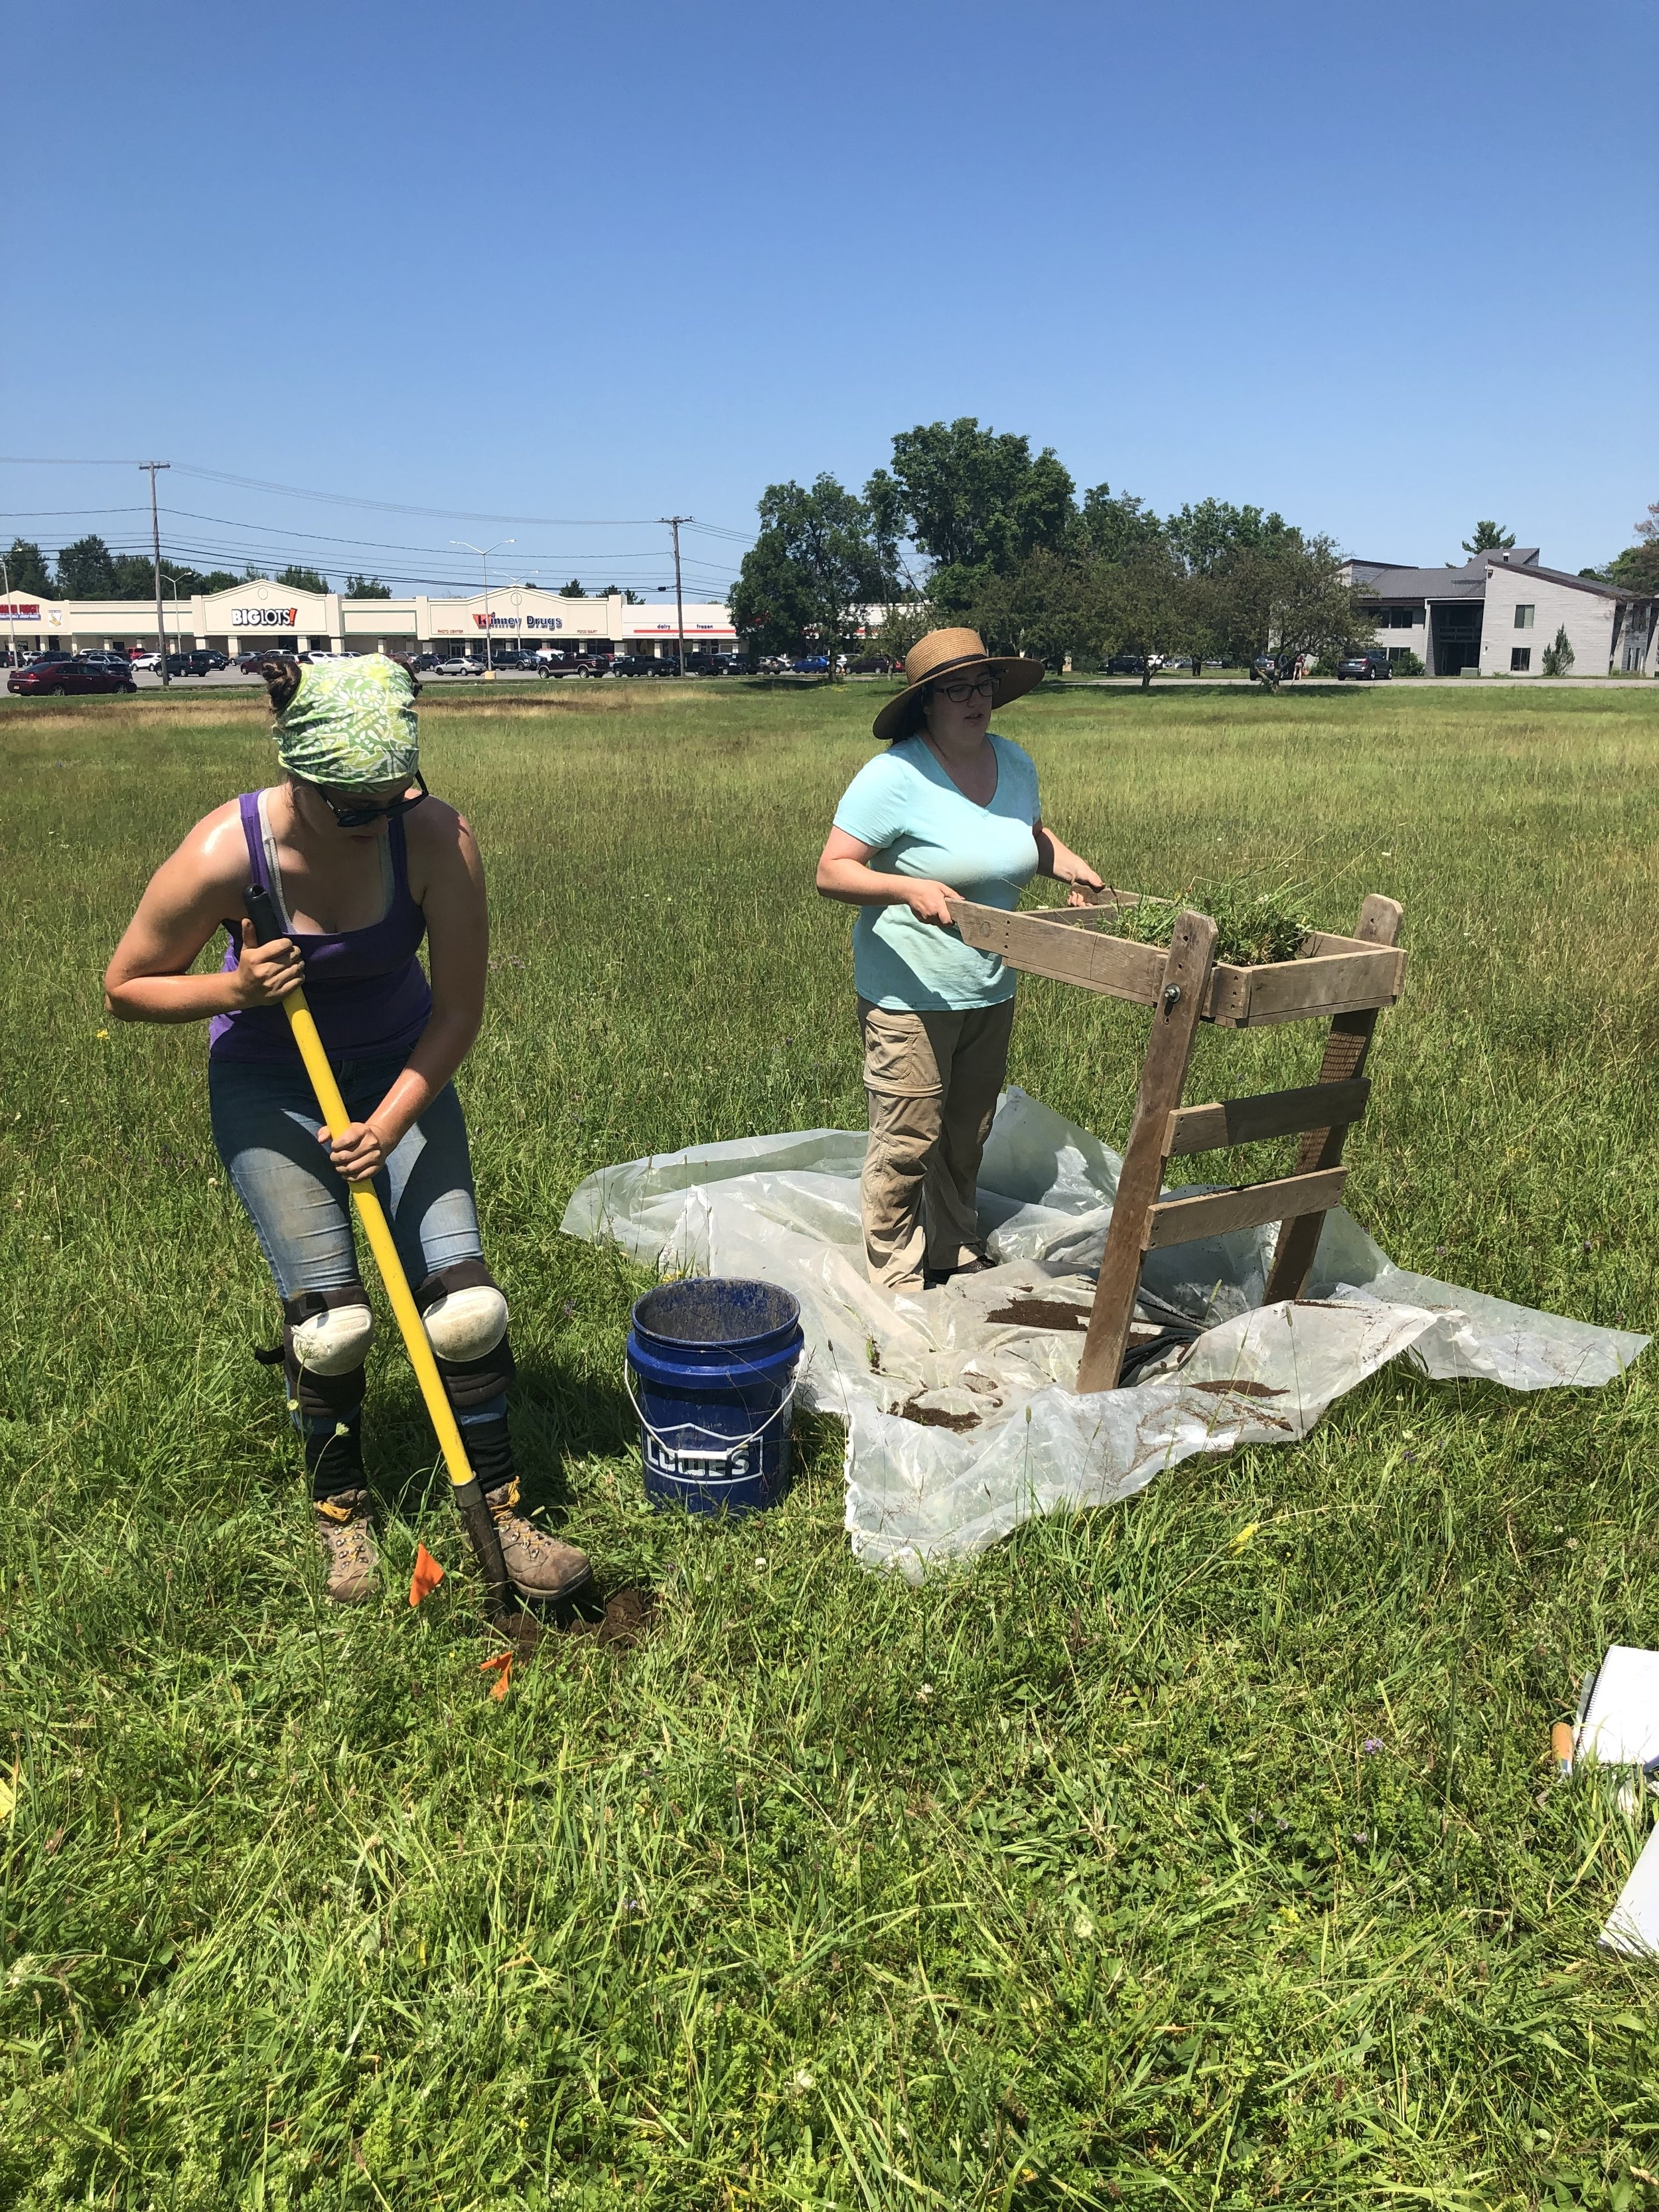 Catt Gagnon (left) and Emily Cox (right), SUNY Potsdam juniors, dig and screen shovel test pits, a standard method of archaeological surveying. (Photo credit: Nicole Roché)